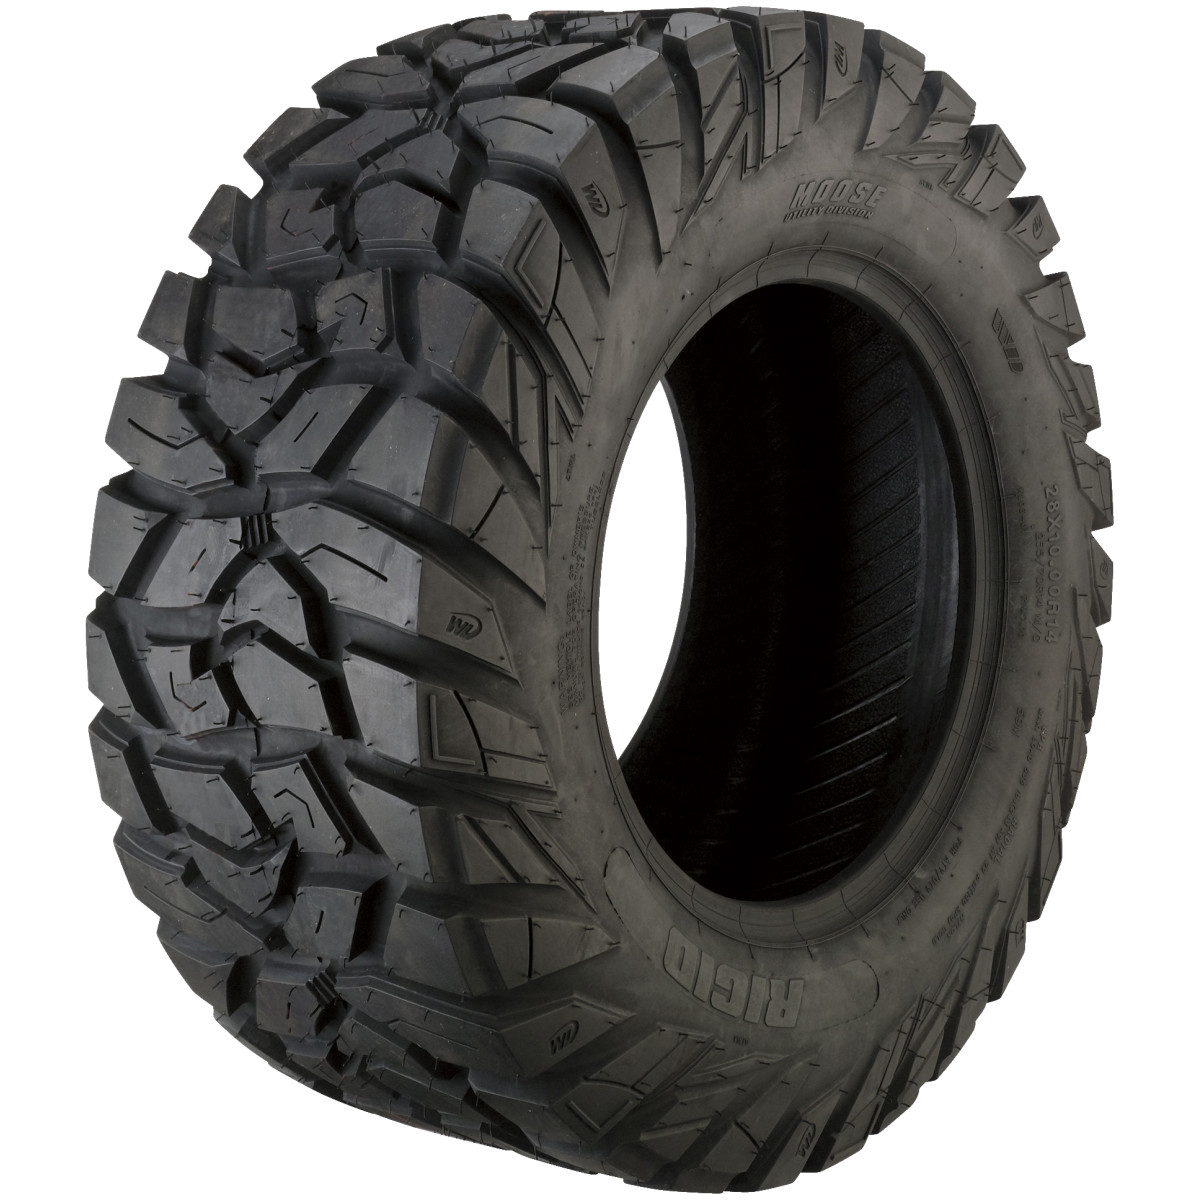 Moose 28x10.00R14 Rigid rengassarja